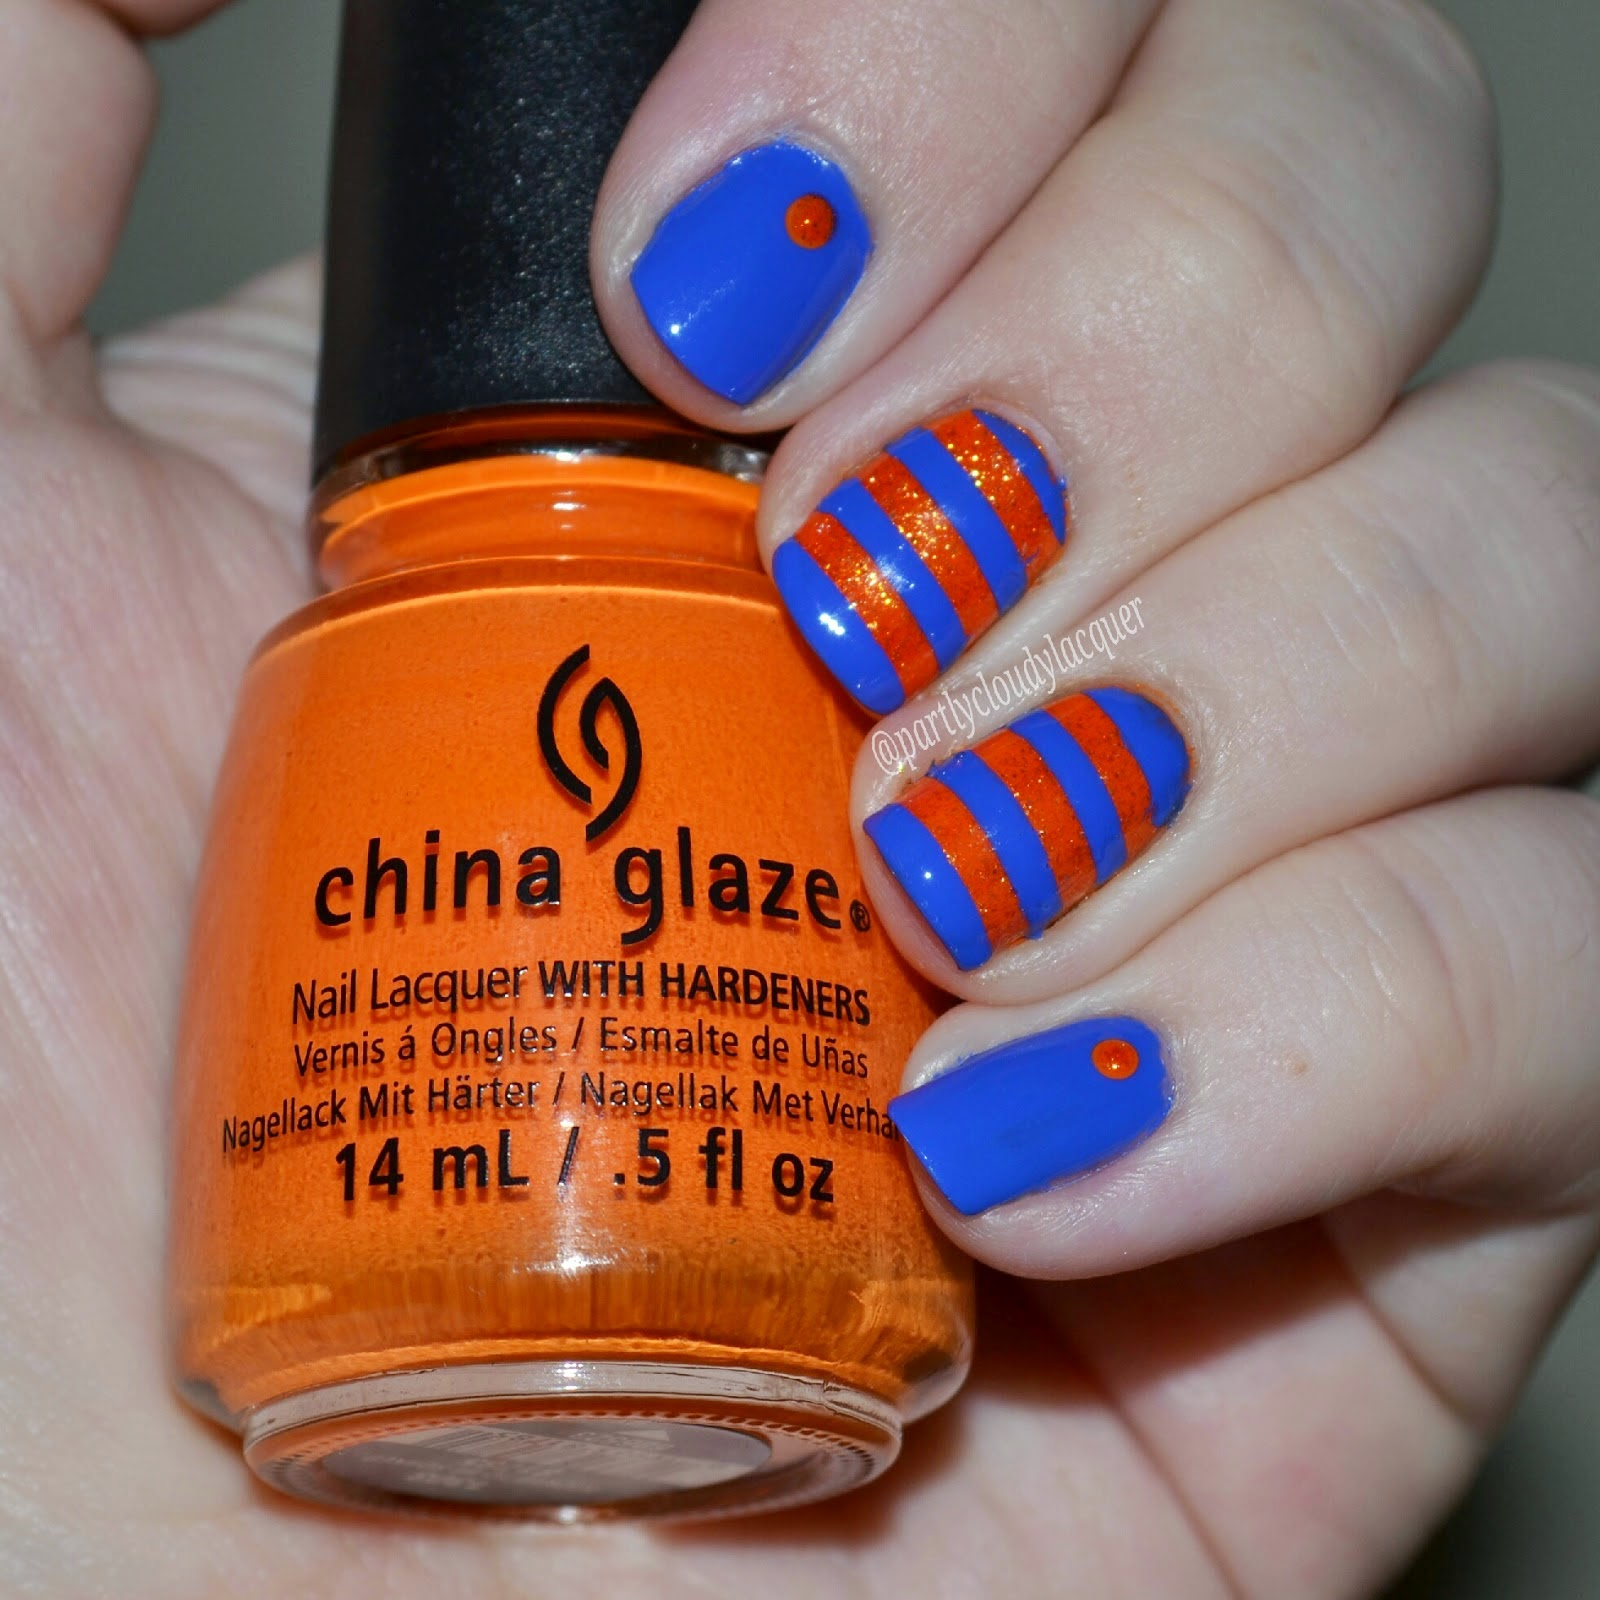 My Top 10 Nail Art Picks of 2014 | Partly Cloudy With a Chance of ...